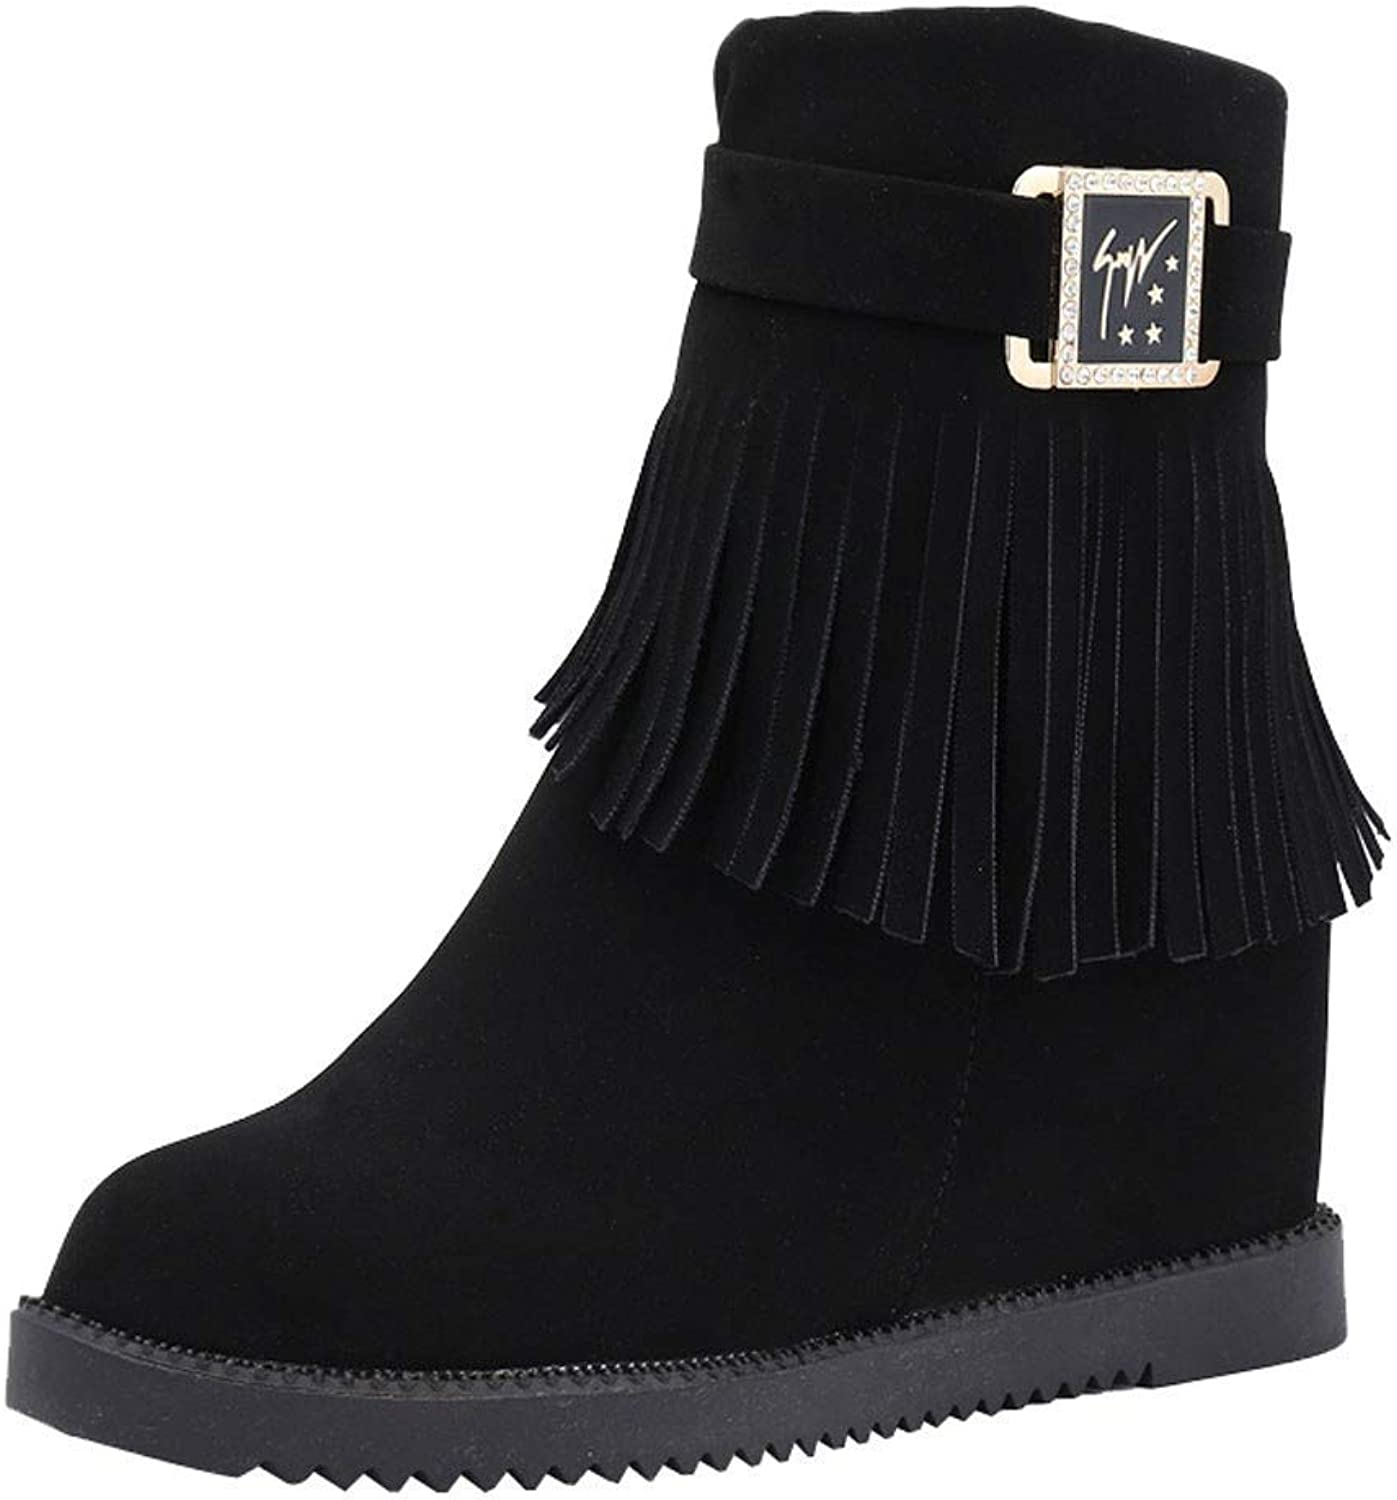 JaHGDU Women Tassels Martin Boot Buckle Increases Within Plush Middle Boots Fashion Leisure Elegant Cosy Wild Tight Super Casual Quality for Women